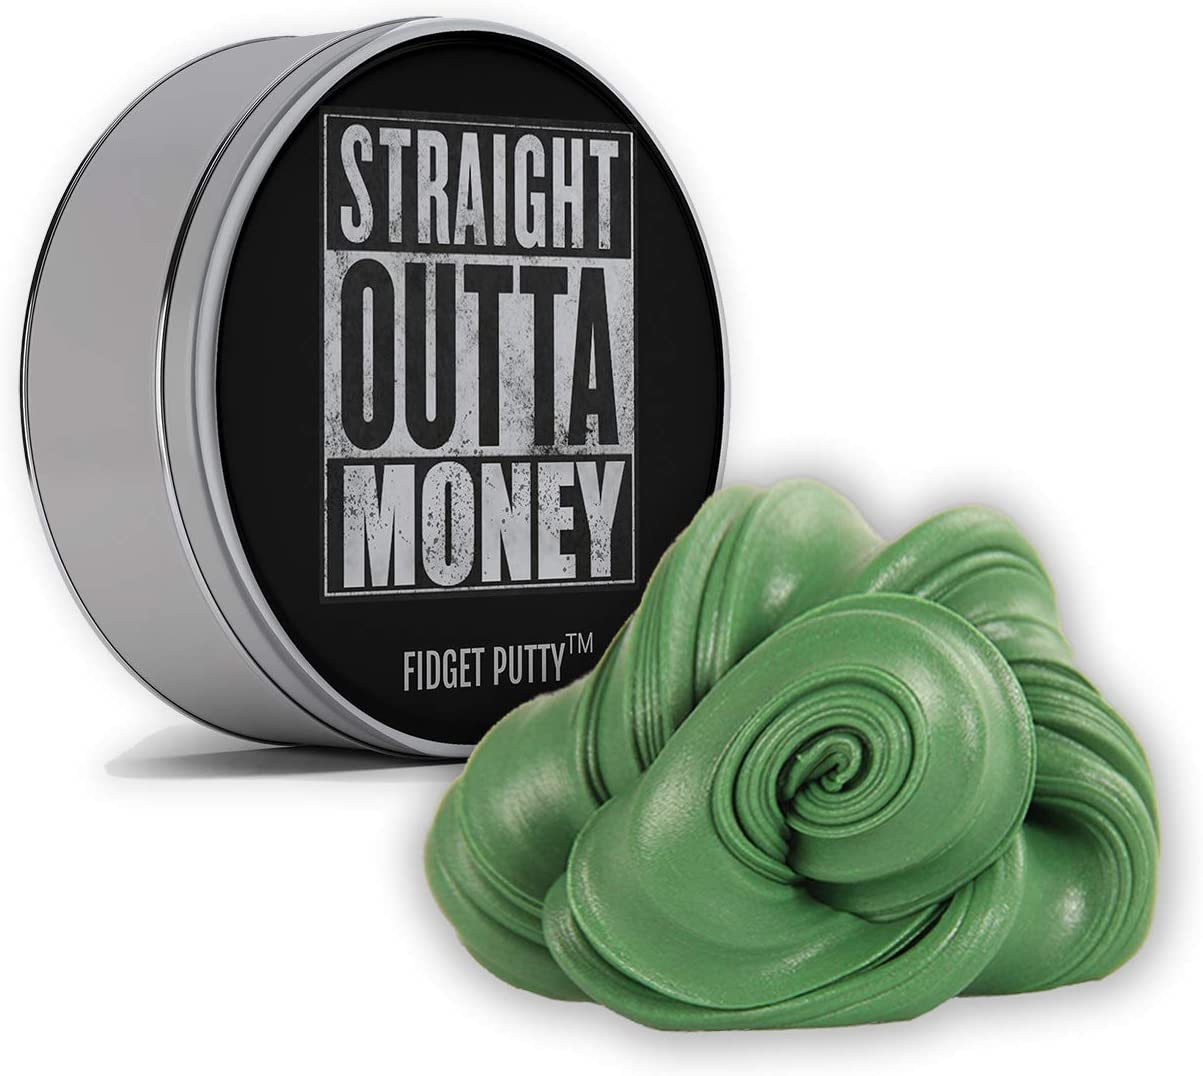 Straight Outta Money Fidget Putty - Gag Gift for Adults, Stocking Stuffers, Fidget Toys, Pearl Green Therapy Putty